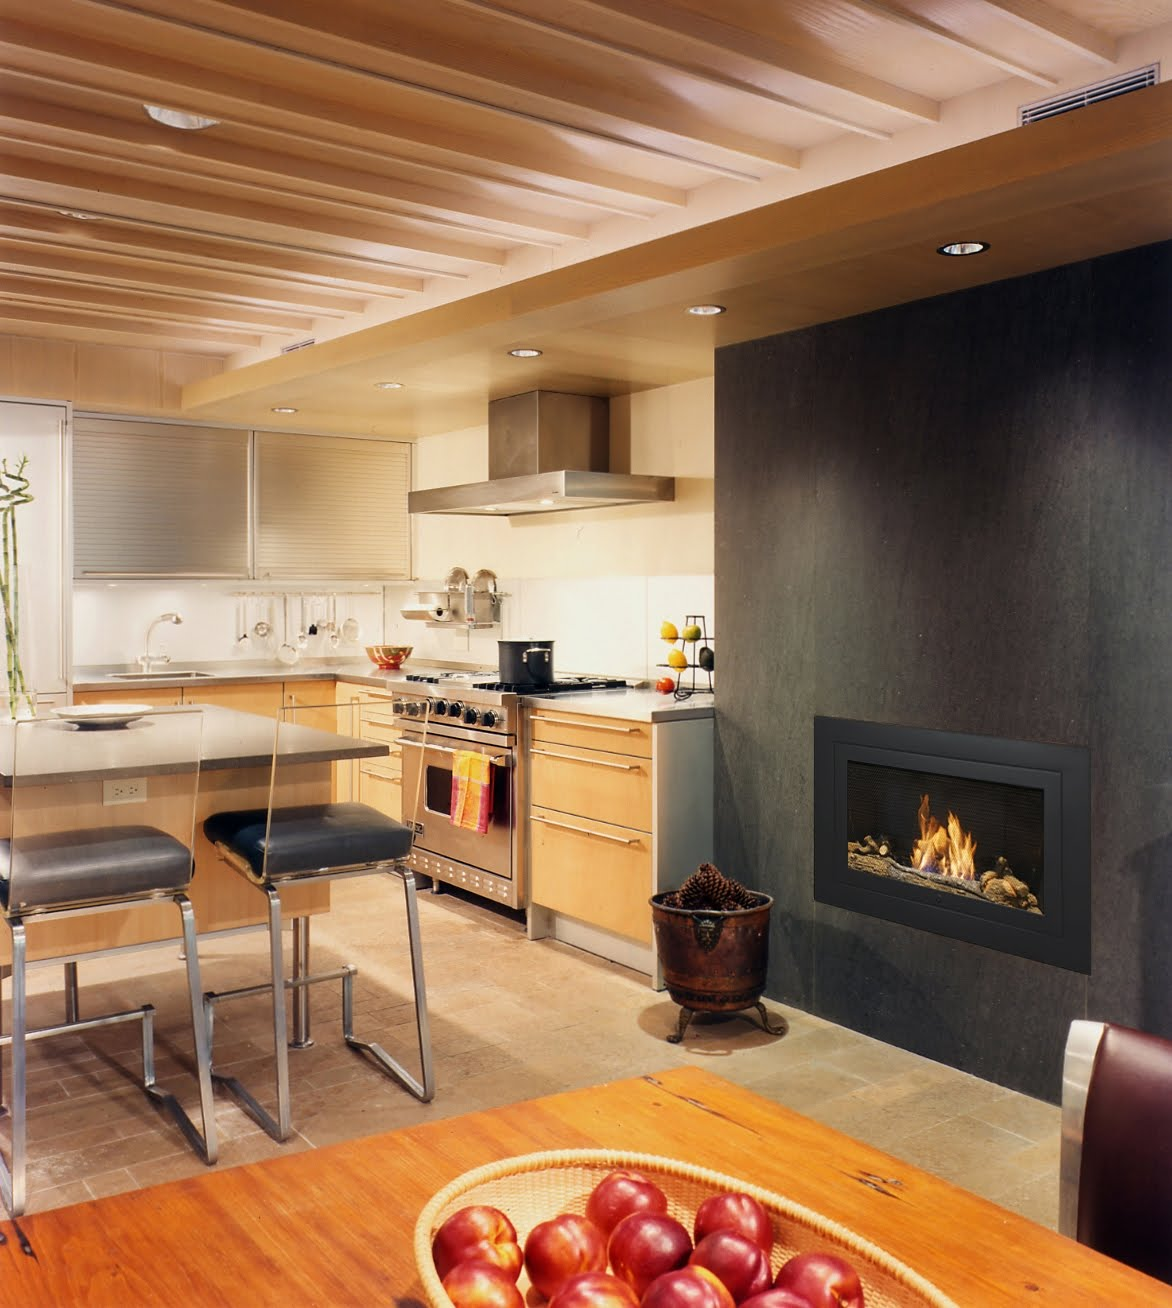 Kitchen Hearth Room Designs: Best Fireplace Design Ideas: Ventless Gel Fuel Fireplaces